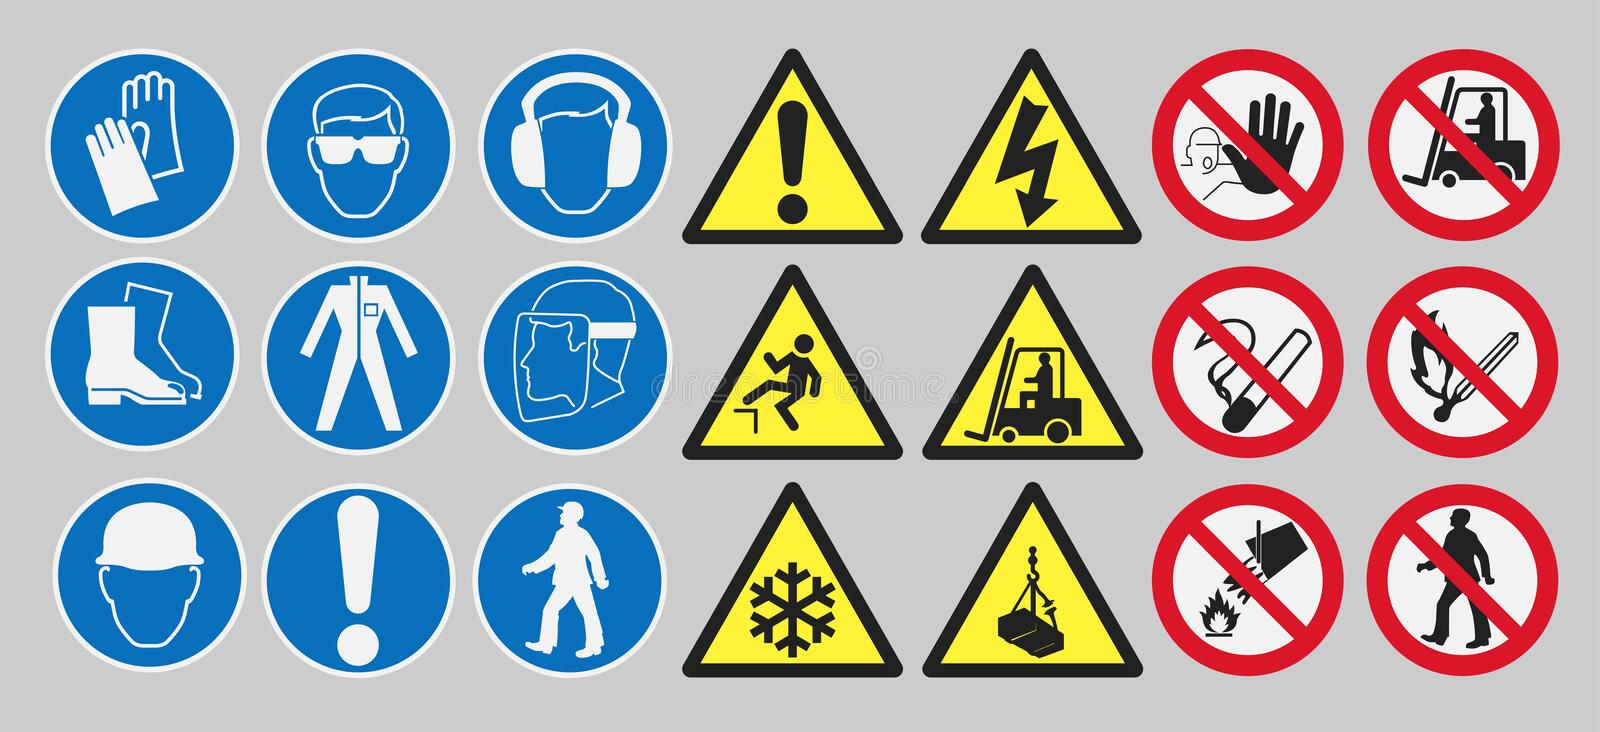 Work safety signs stock illustration